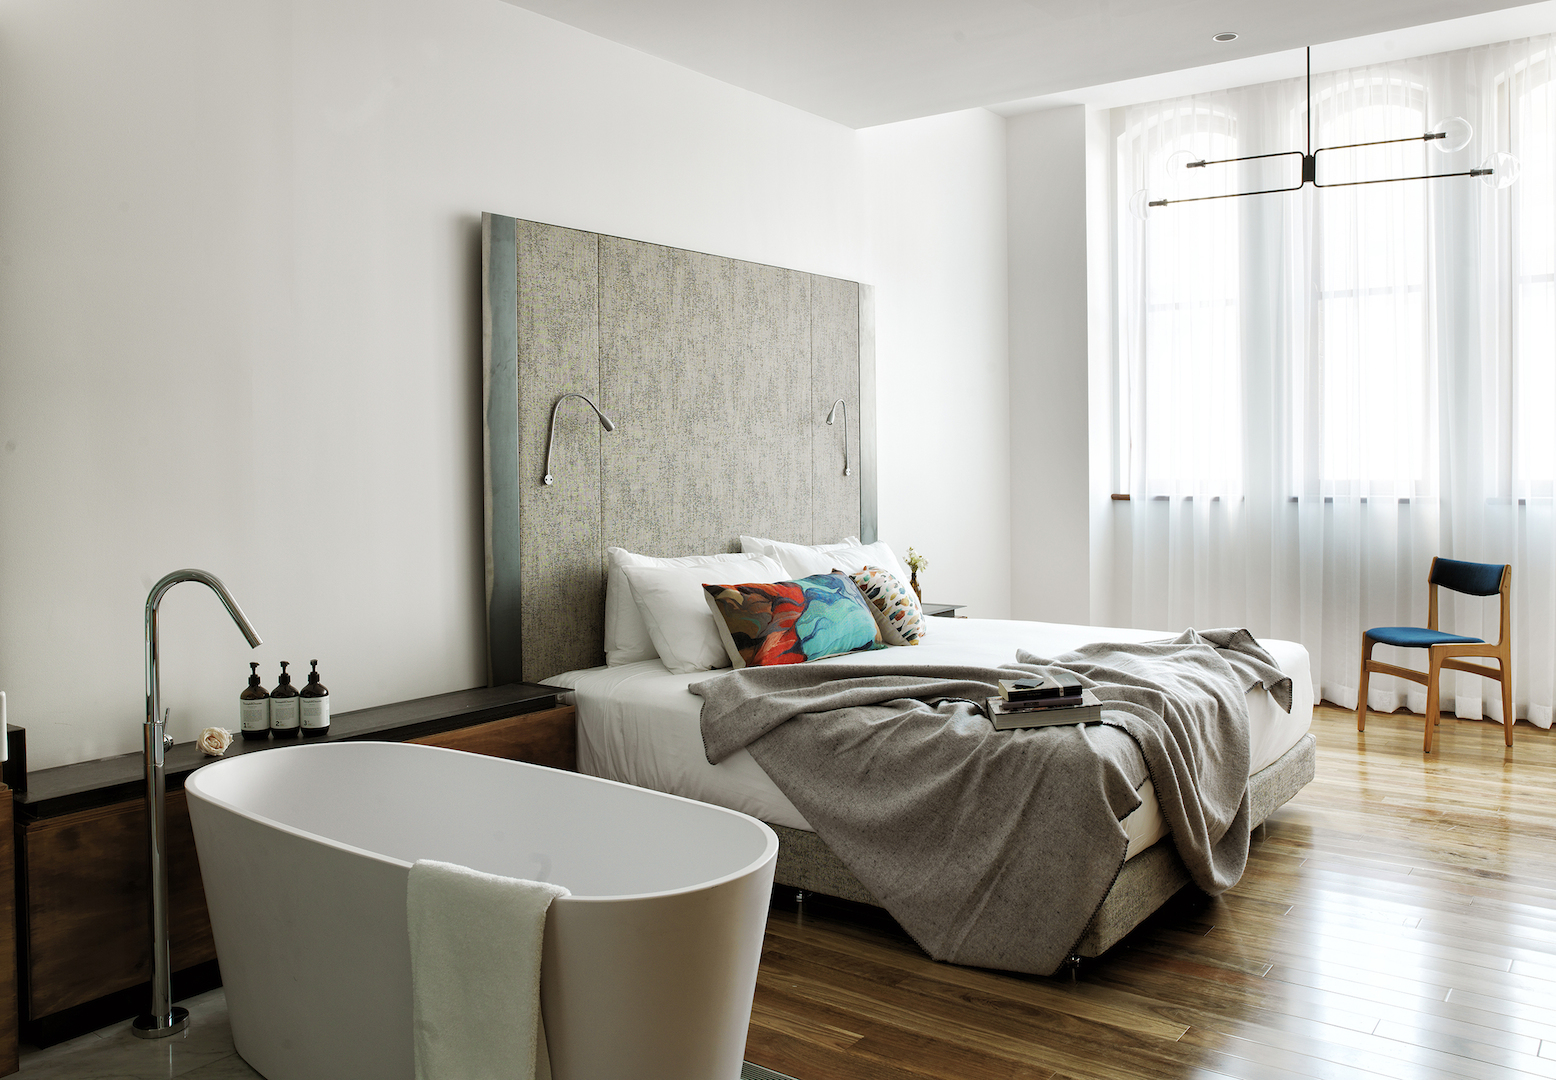 OLDCLARE_INTERIOR_ROOMFIVE_0015-1.jpg